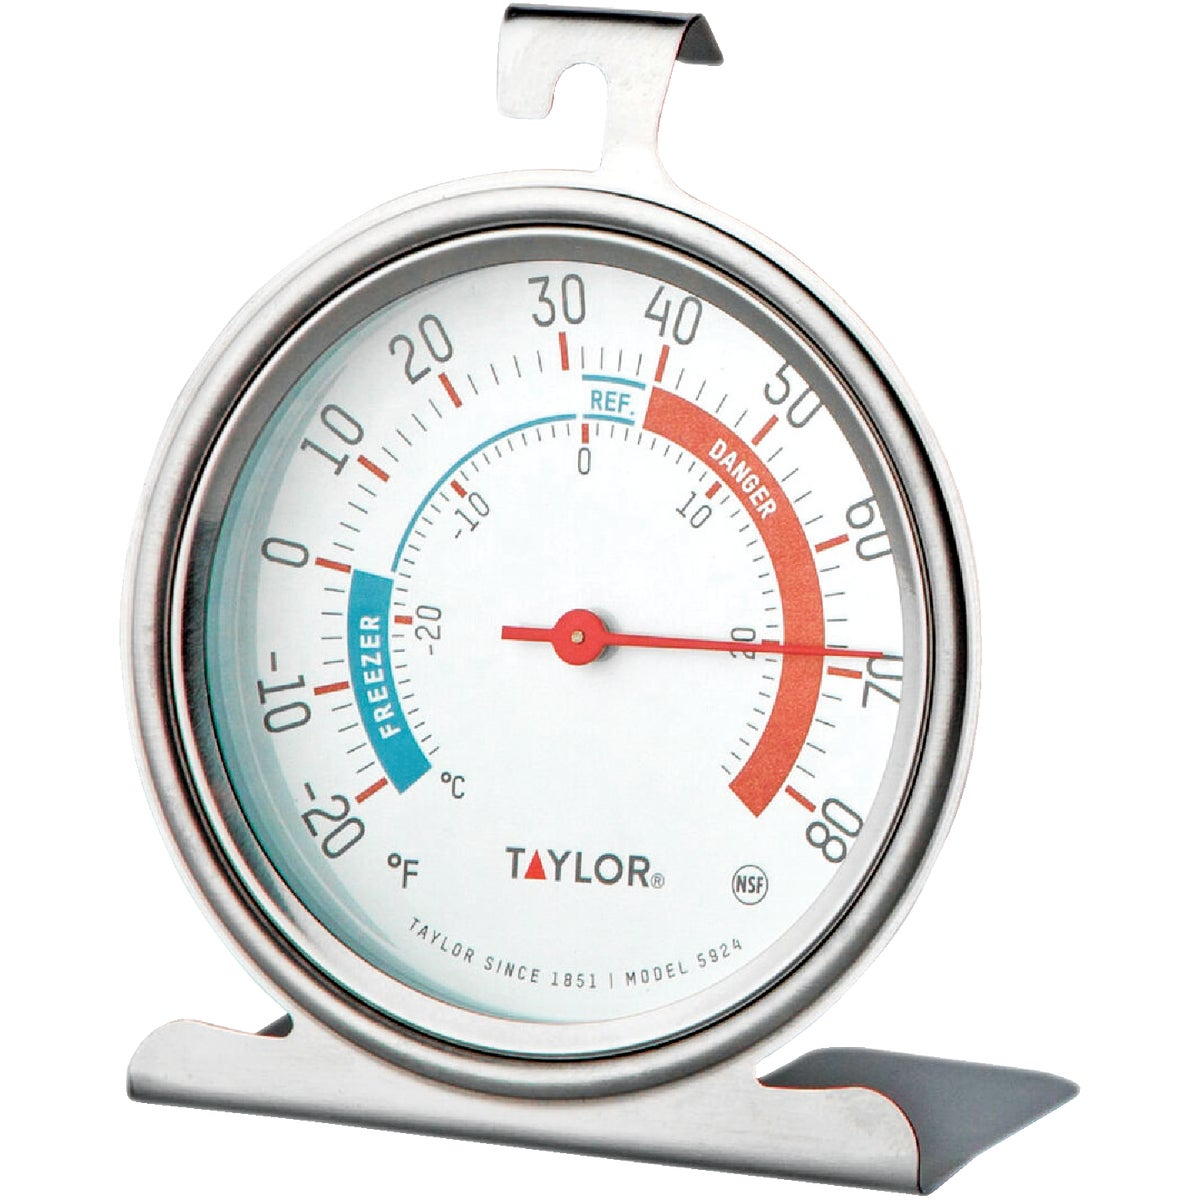 REFRIG/FRZR THERMOMETER - 5924 by Taylor Precision